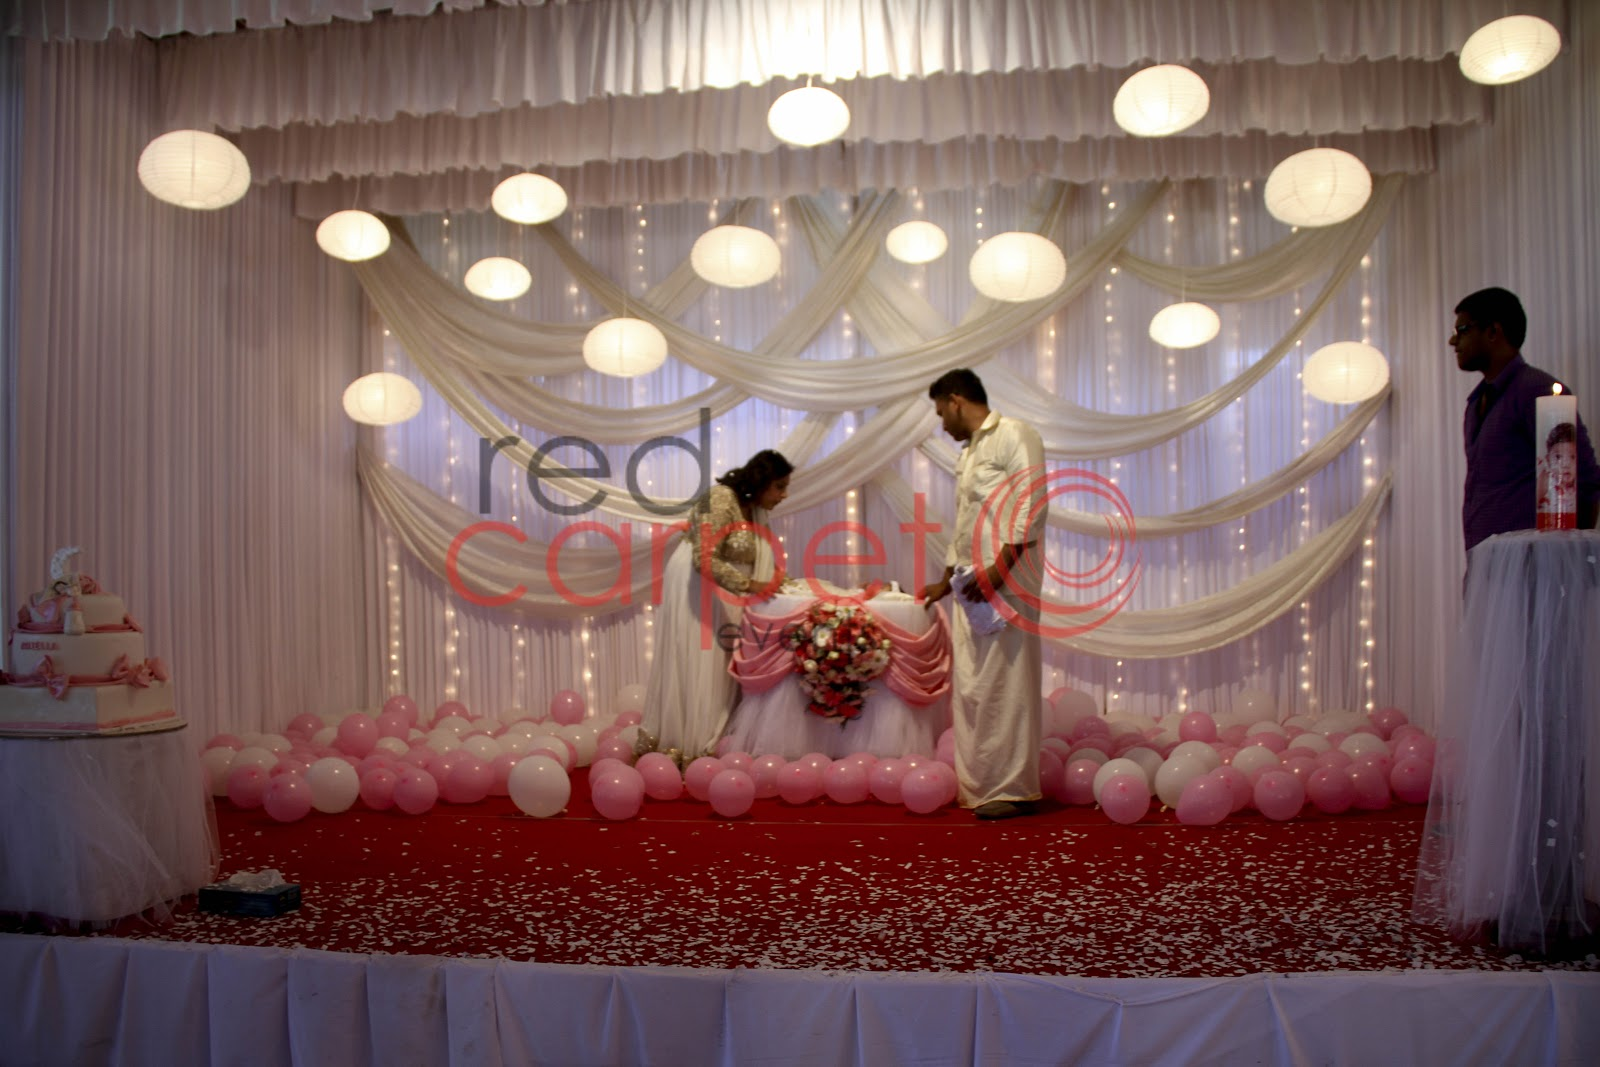 Red Carpet Events Complete Event Management And Wedding